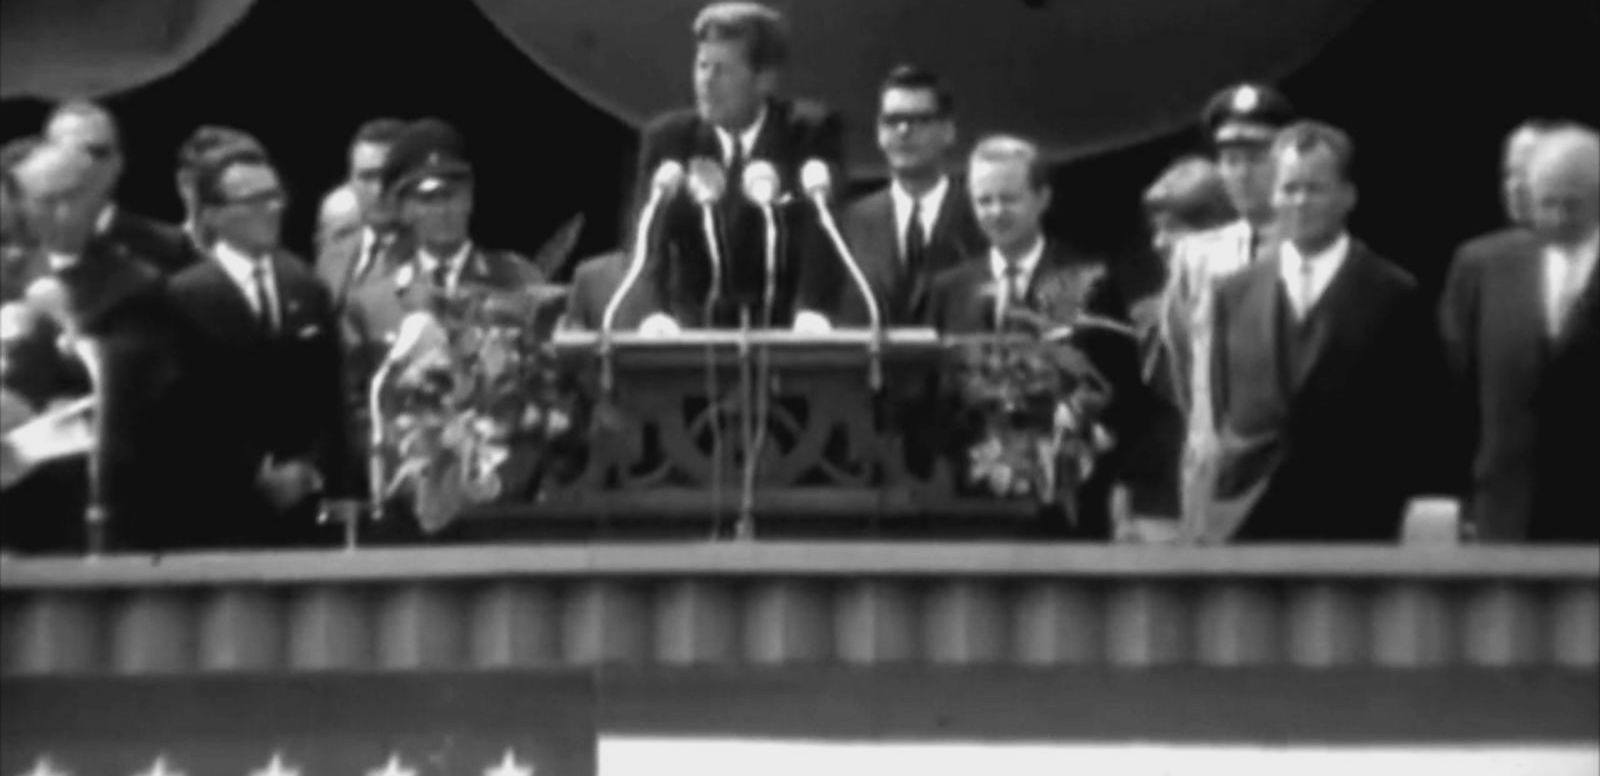 VIDEO: This Week in History: June 26-July 2